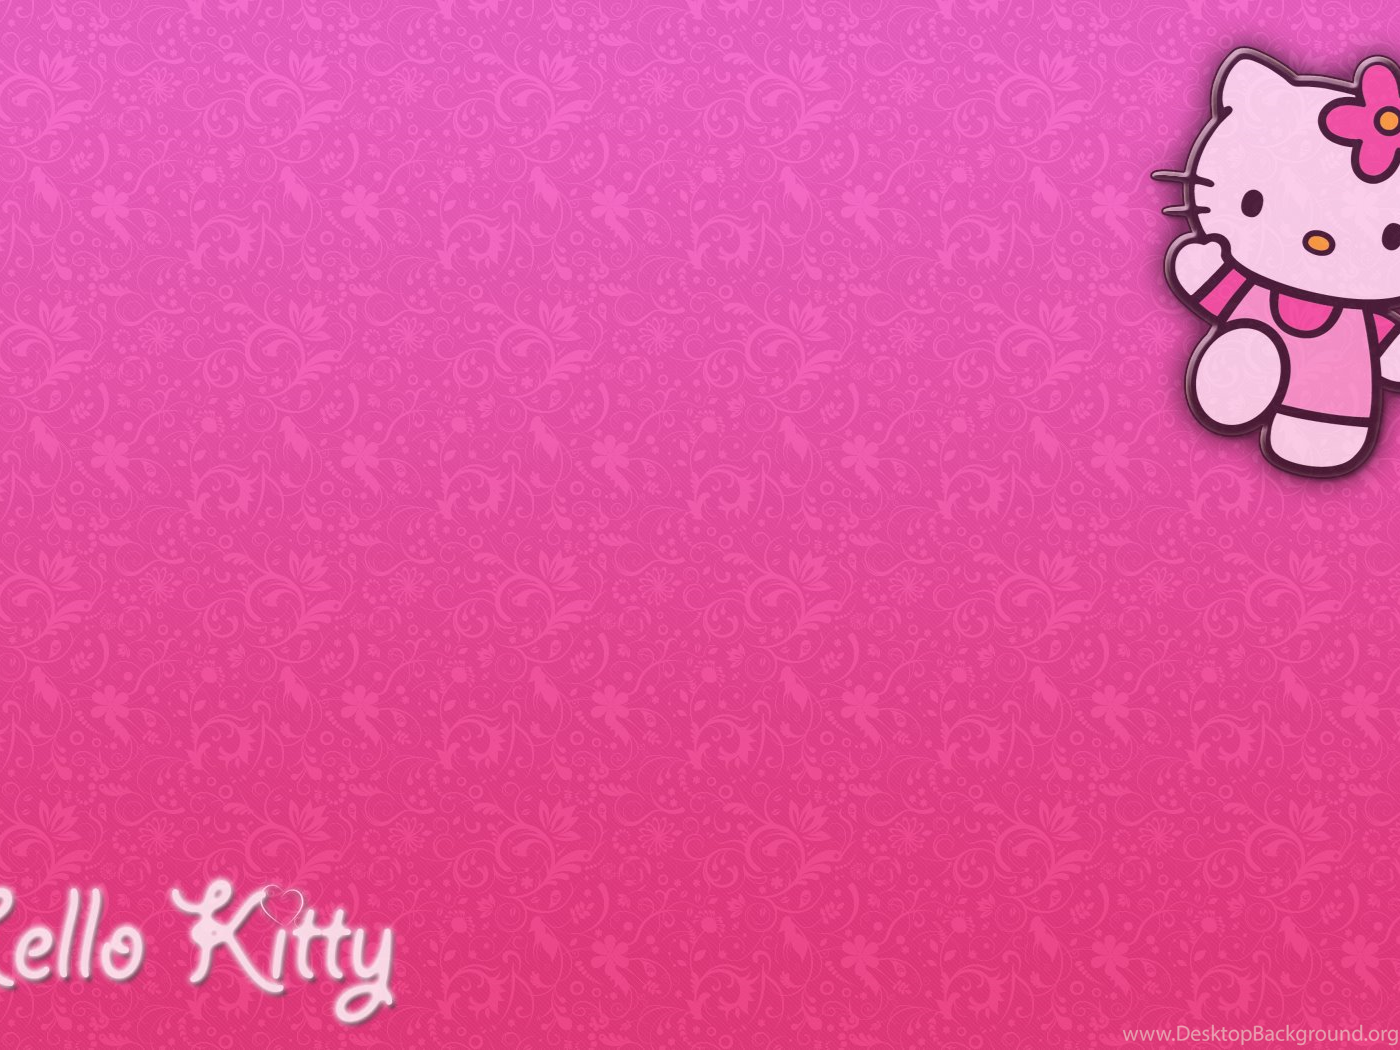 Hello Kitty Wallpapers Desktop Background